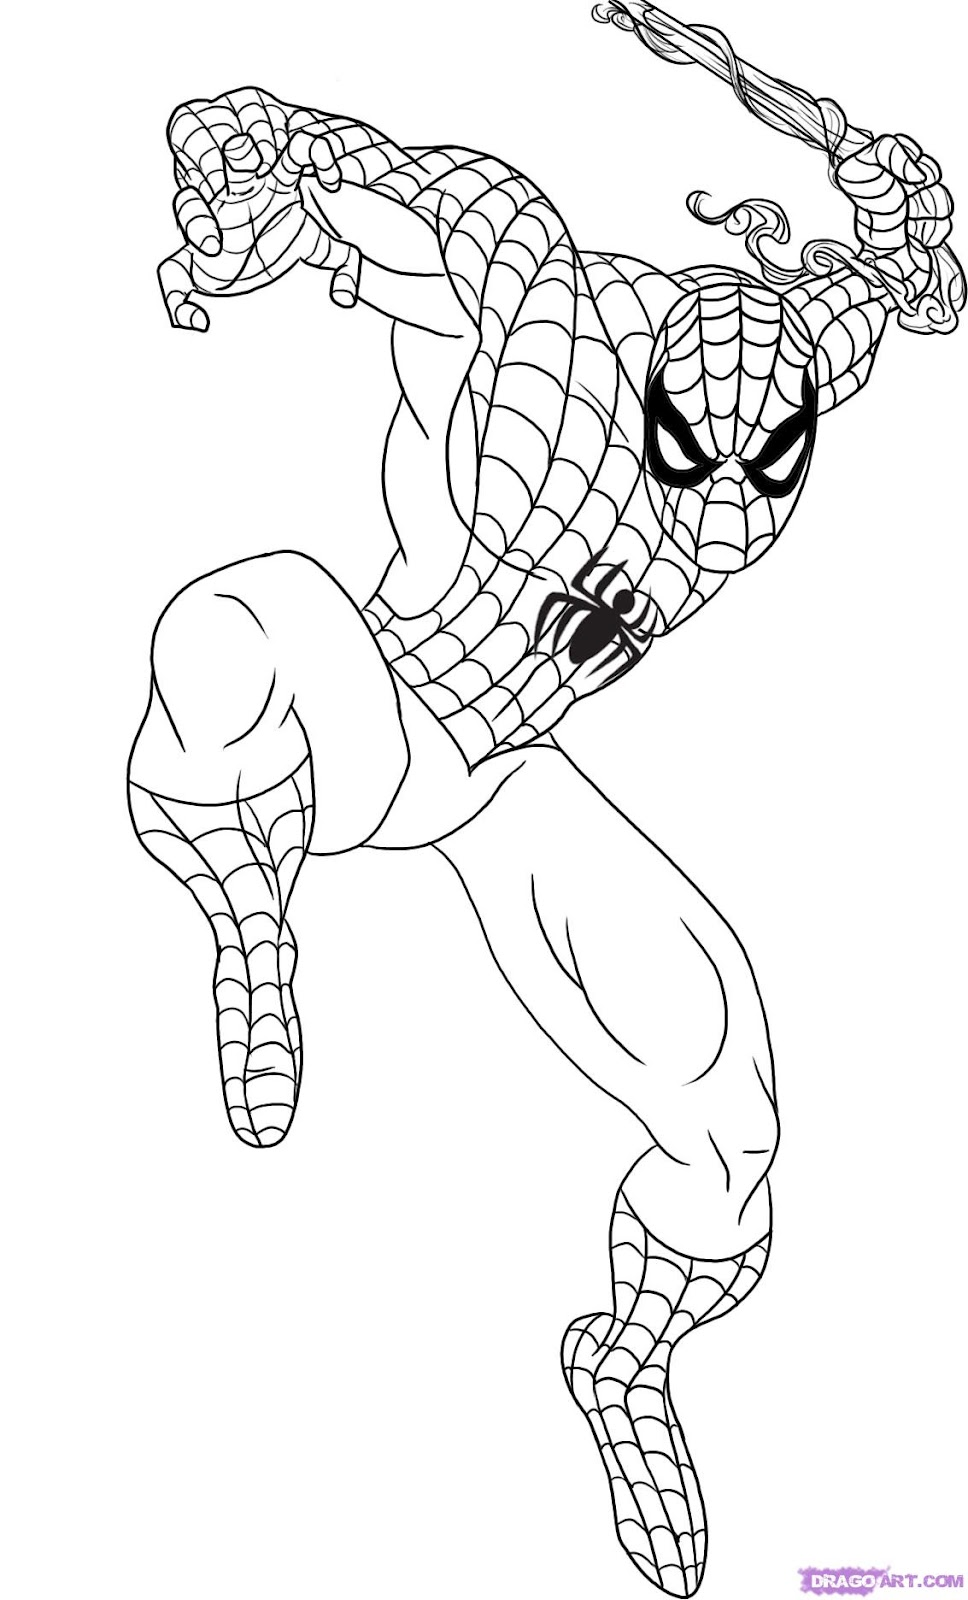 Spiderman Kids Coloring Pages Bullgallery